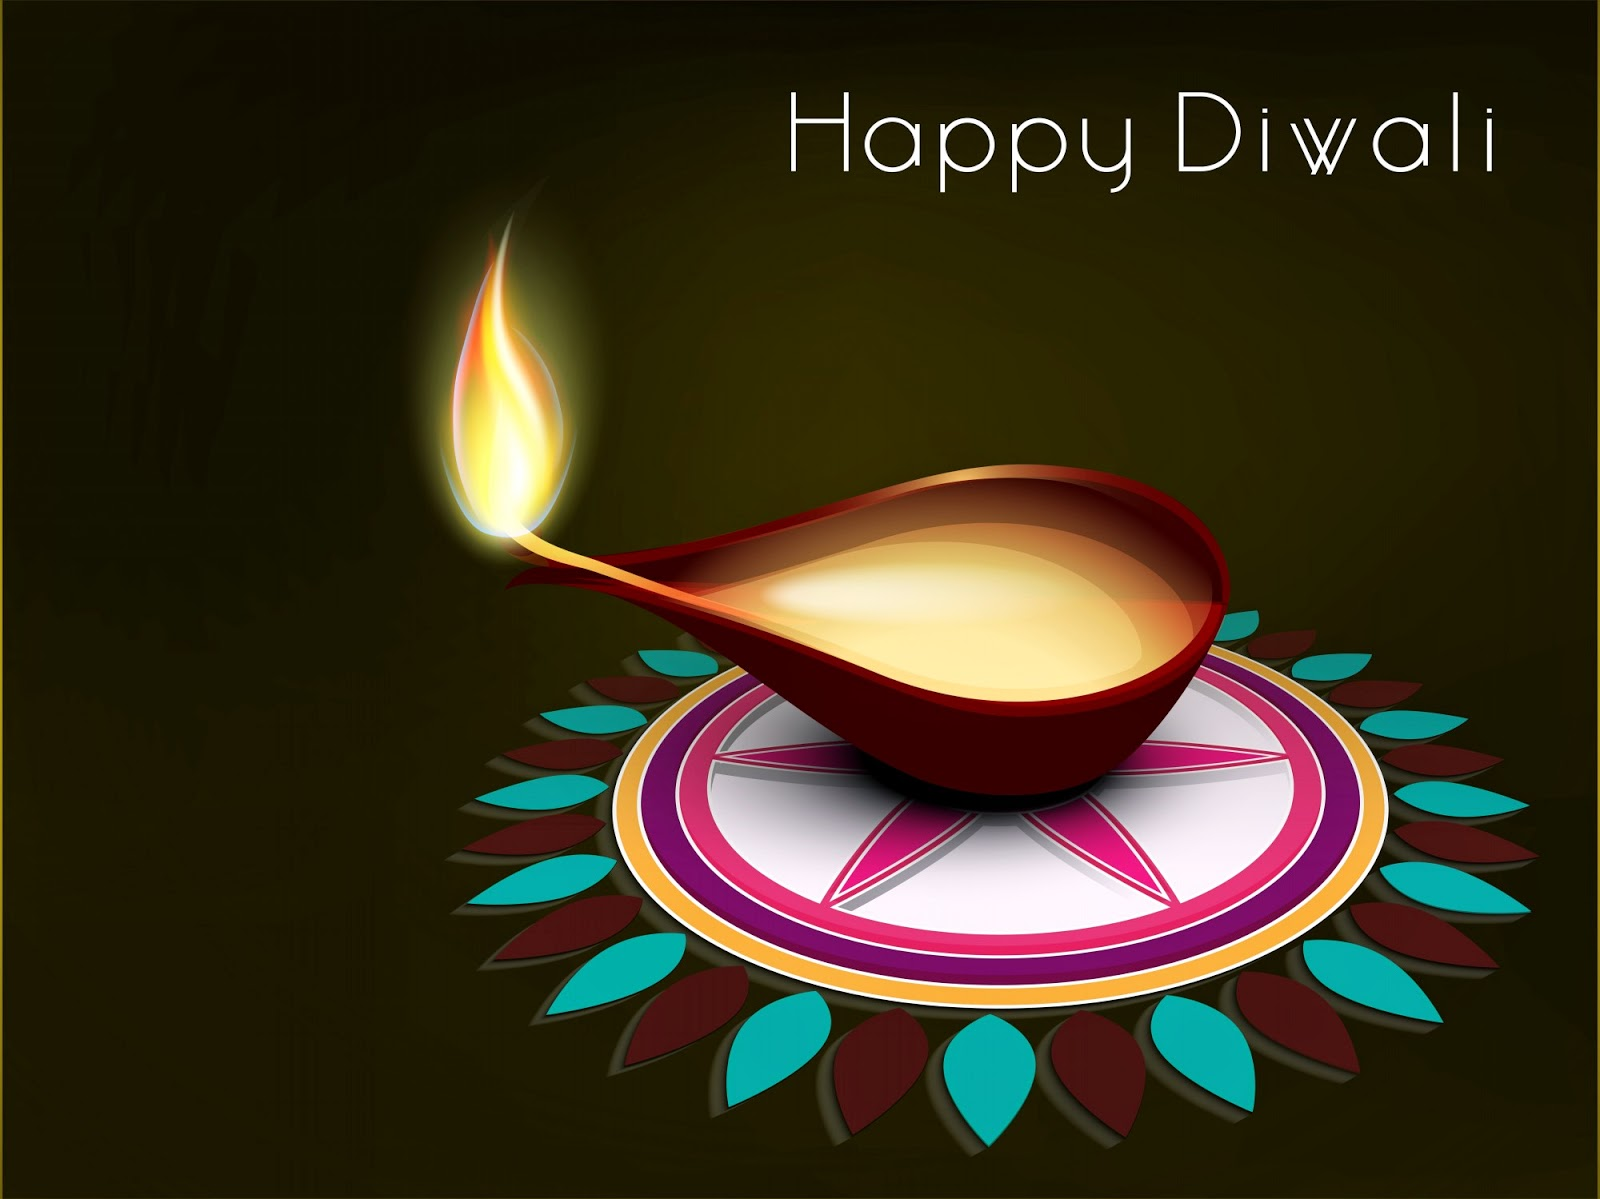 Happy diwali 2018 images wishes messages quotes free100 happy diwali 2018 images pictures photos wallpapers m4hsunfo